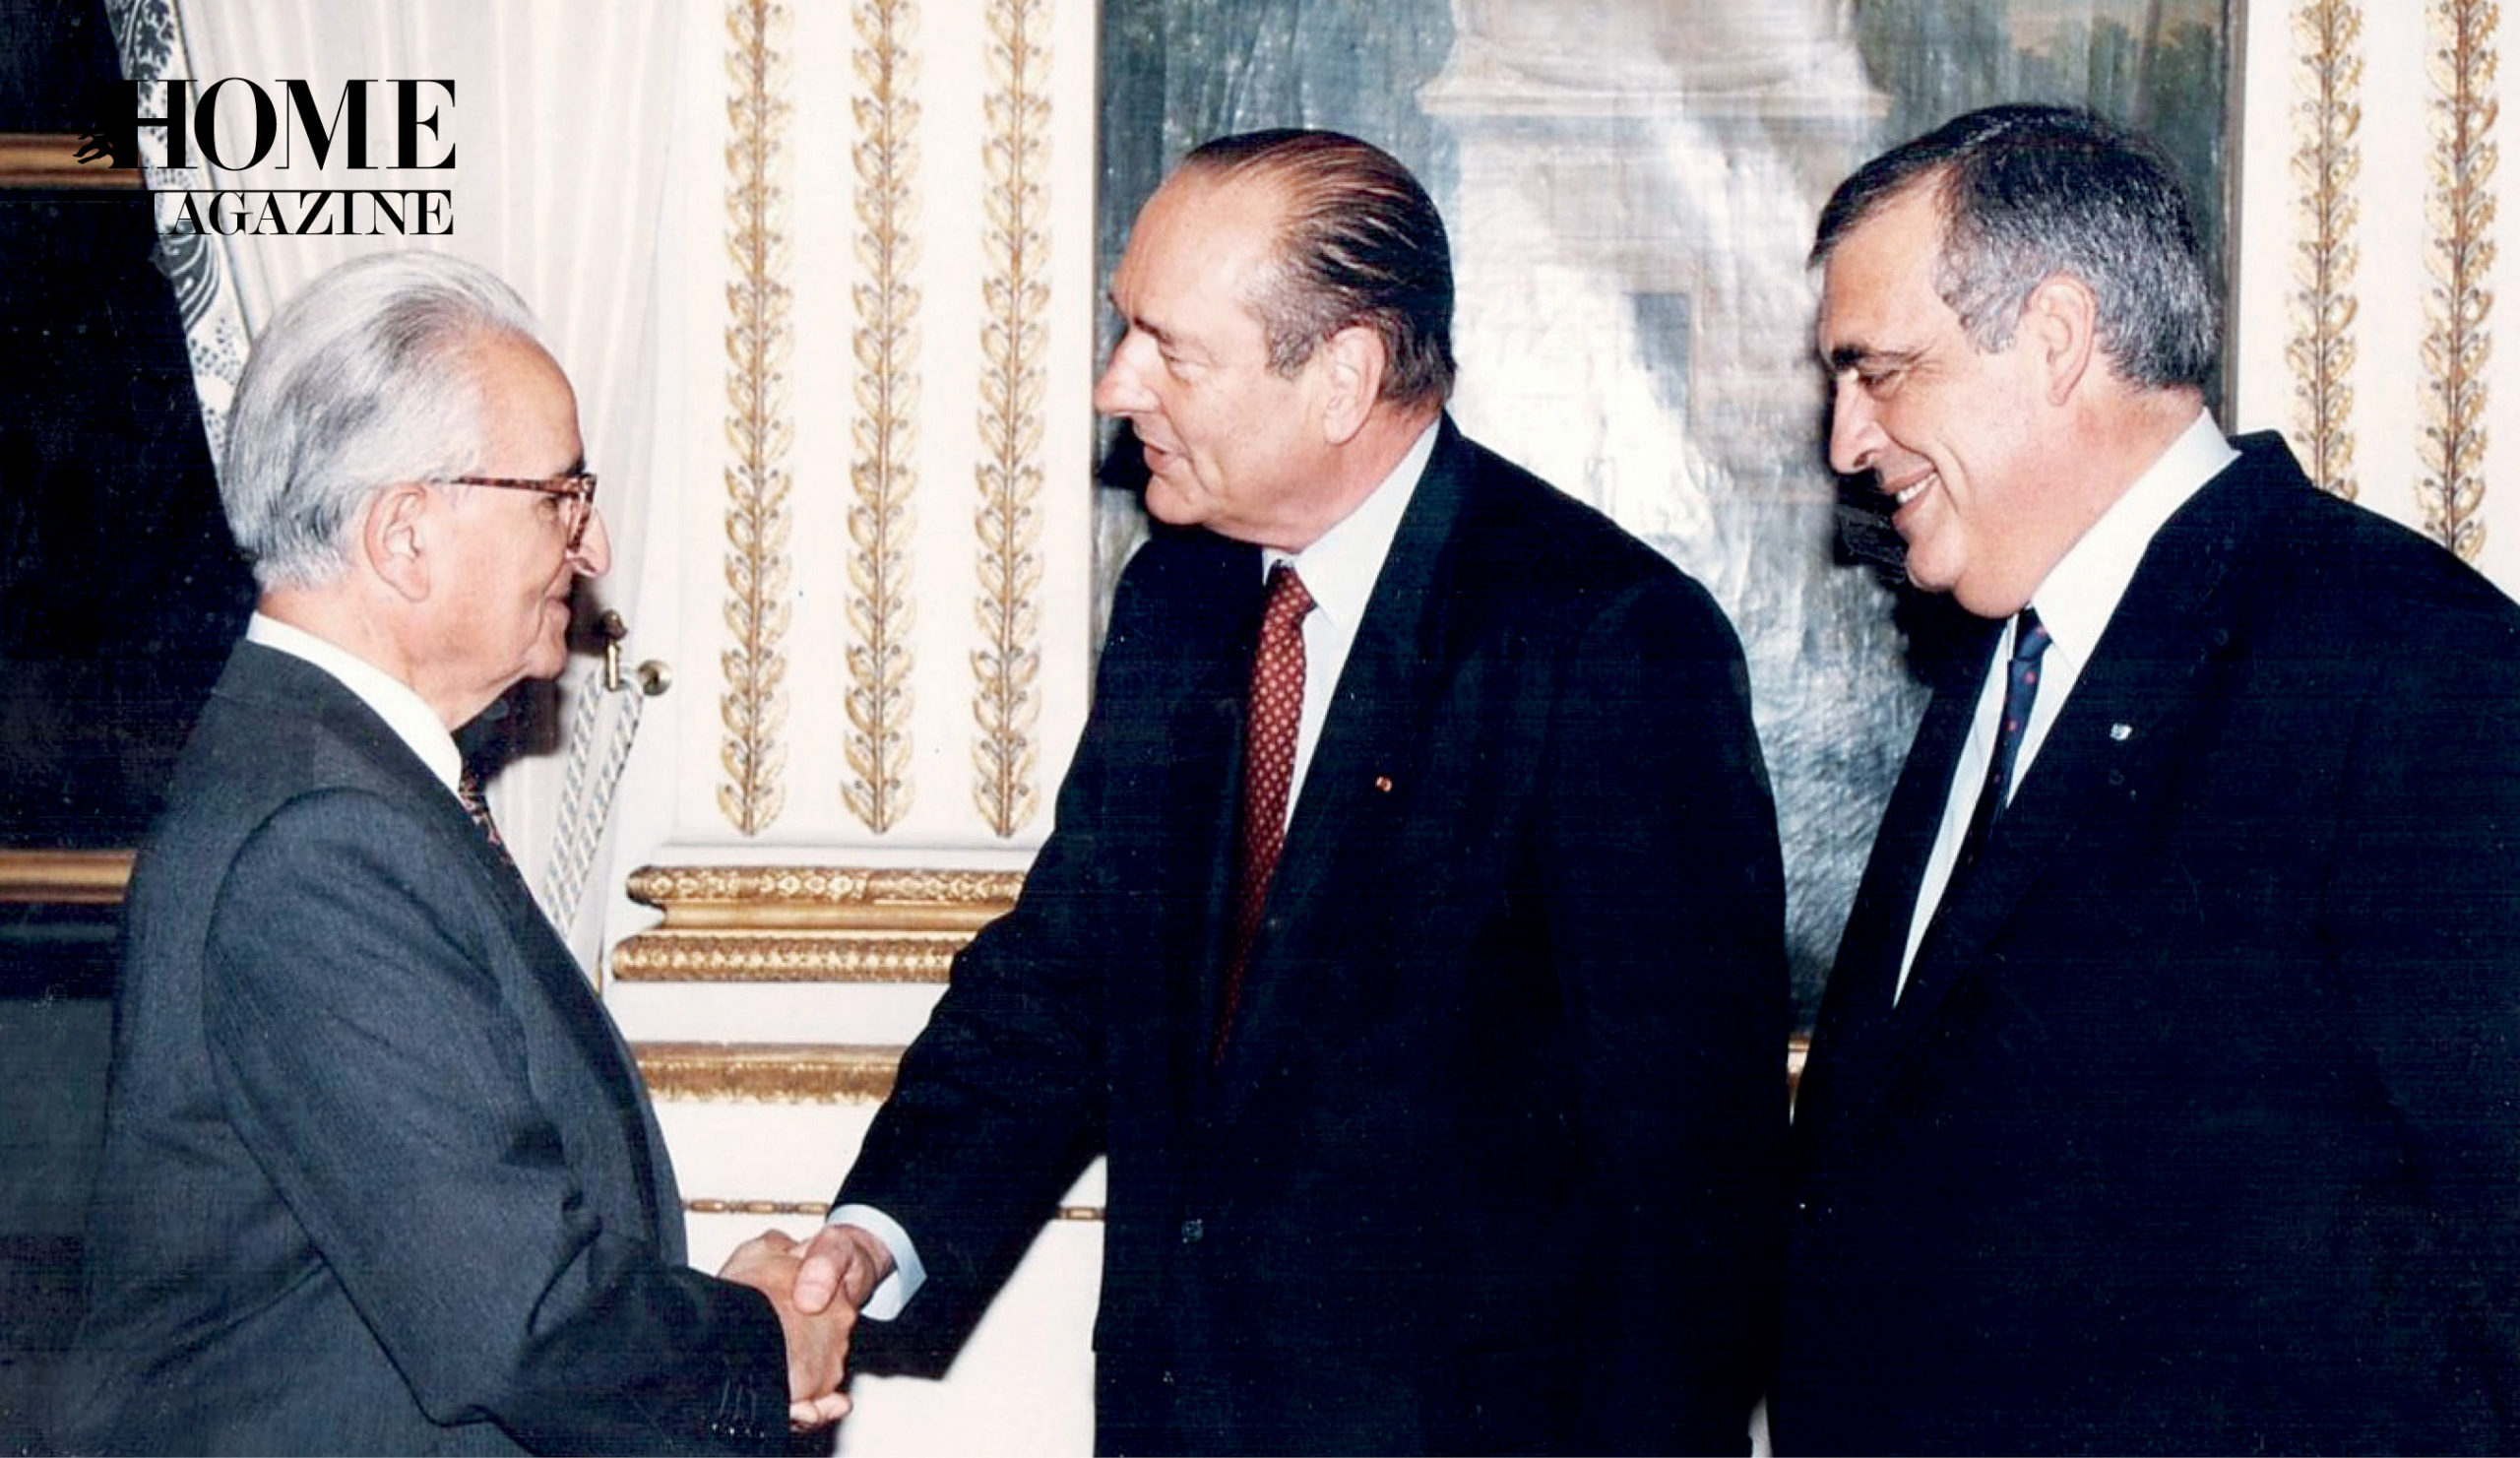 Three men in suits shaking hands